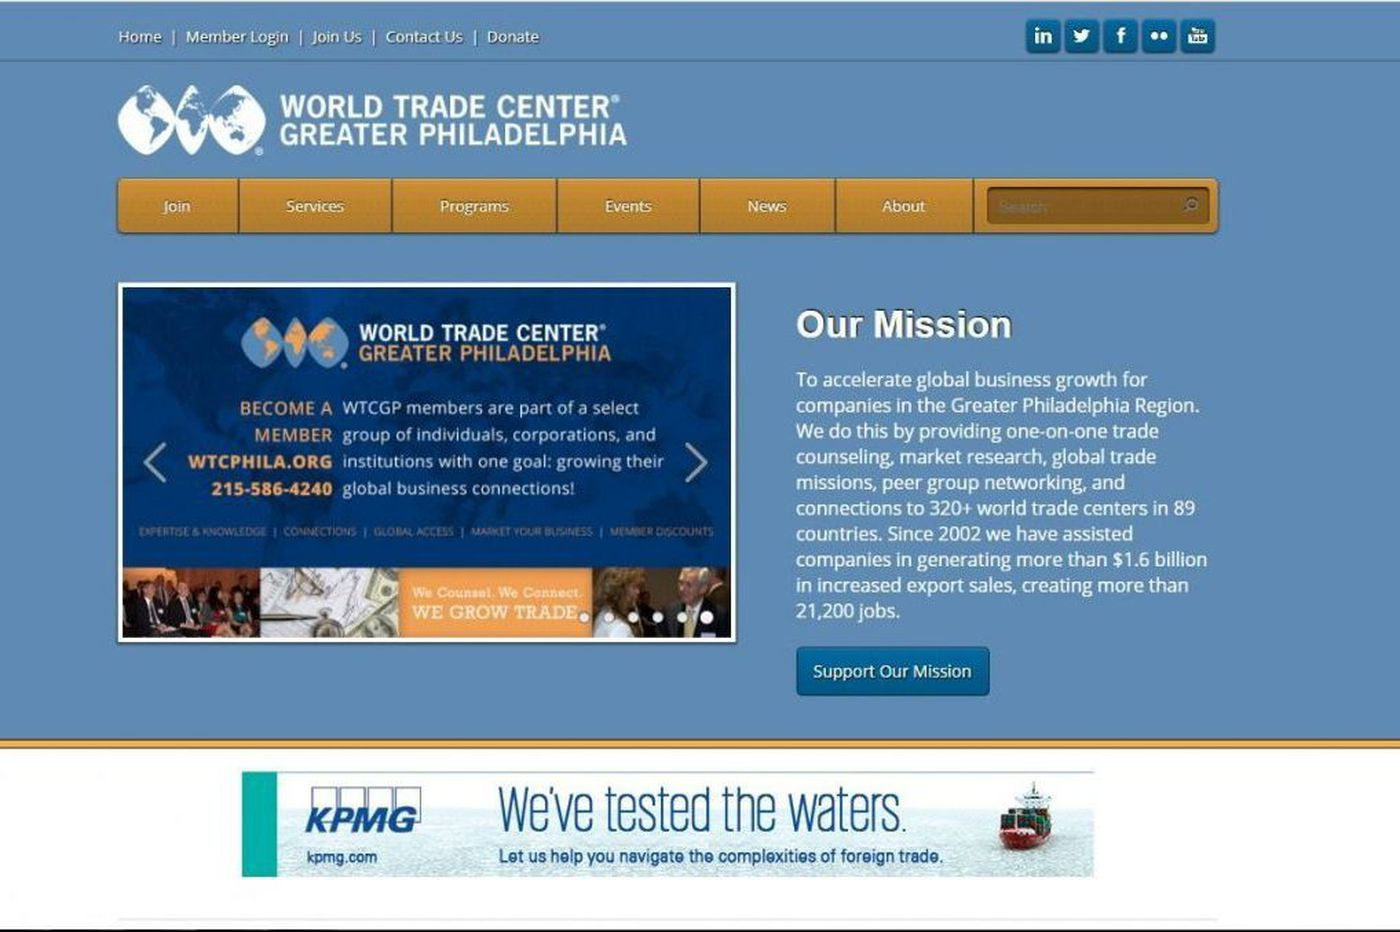 World Trade Center gets $1M grant from U.S. Commerce Dept.